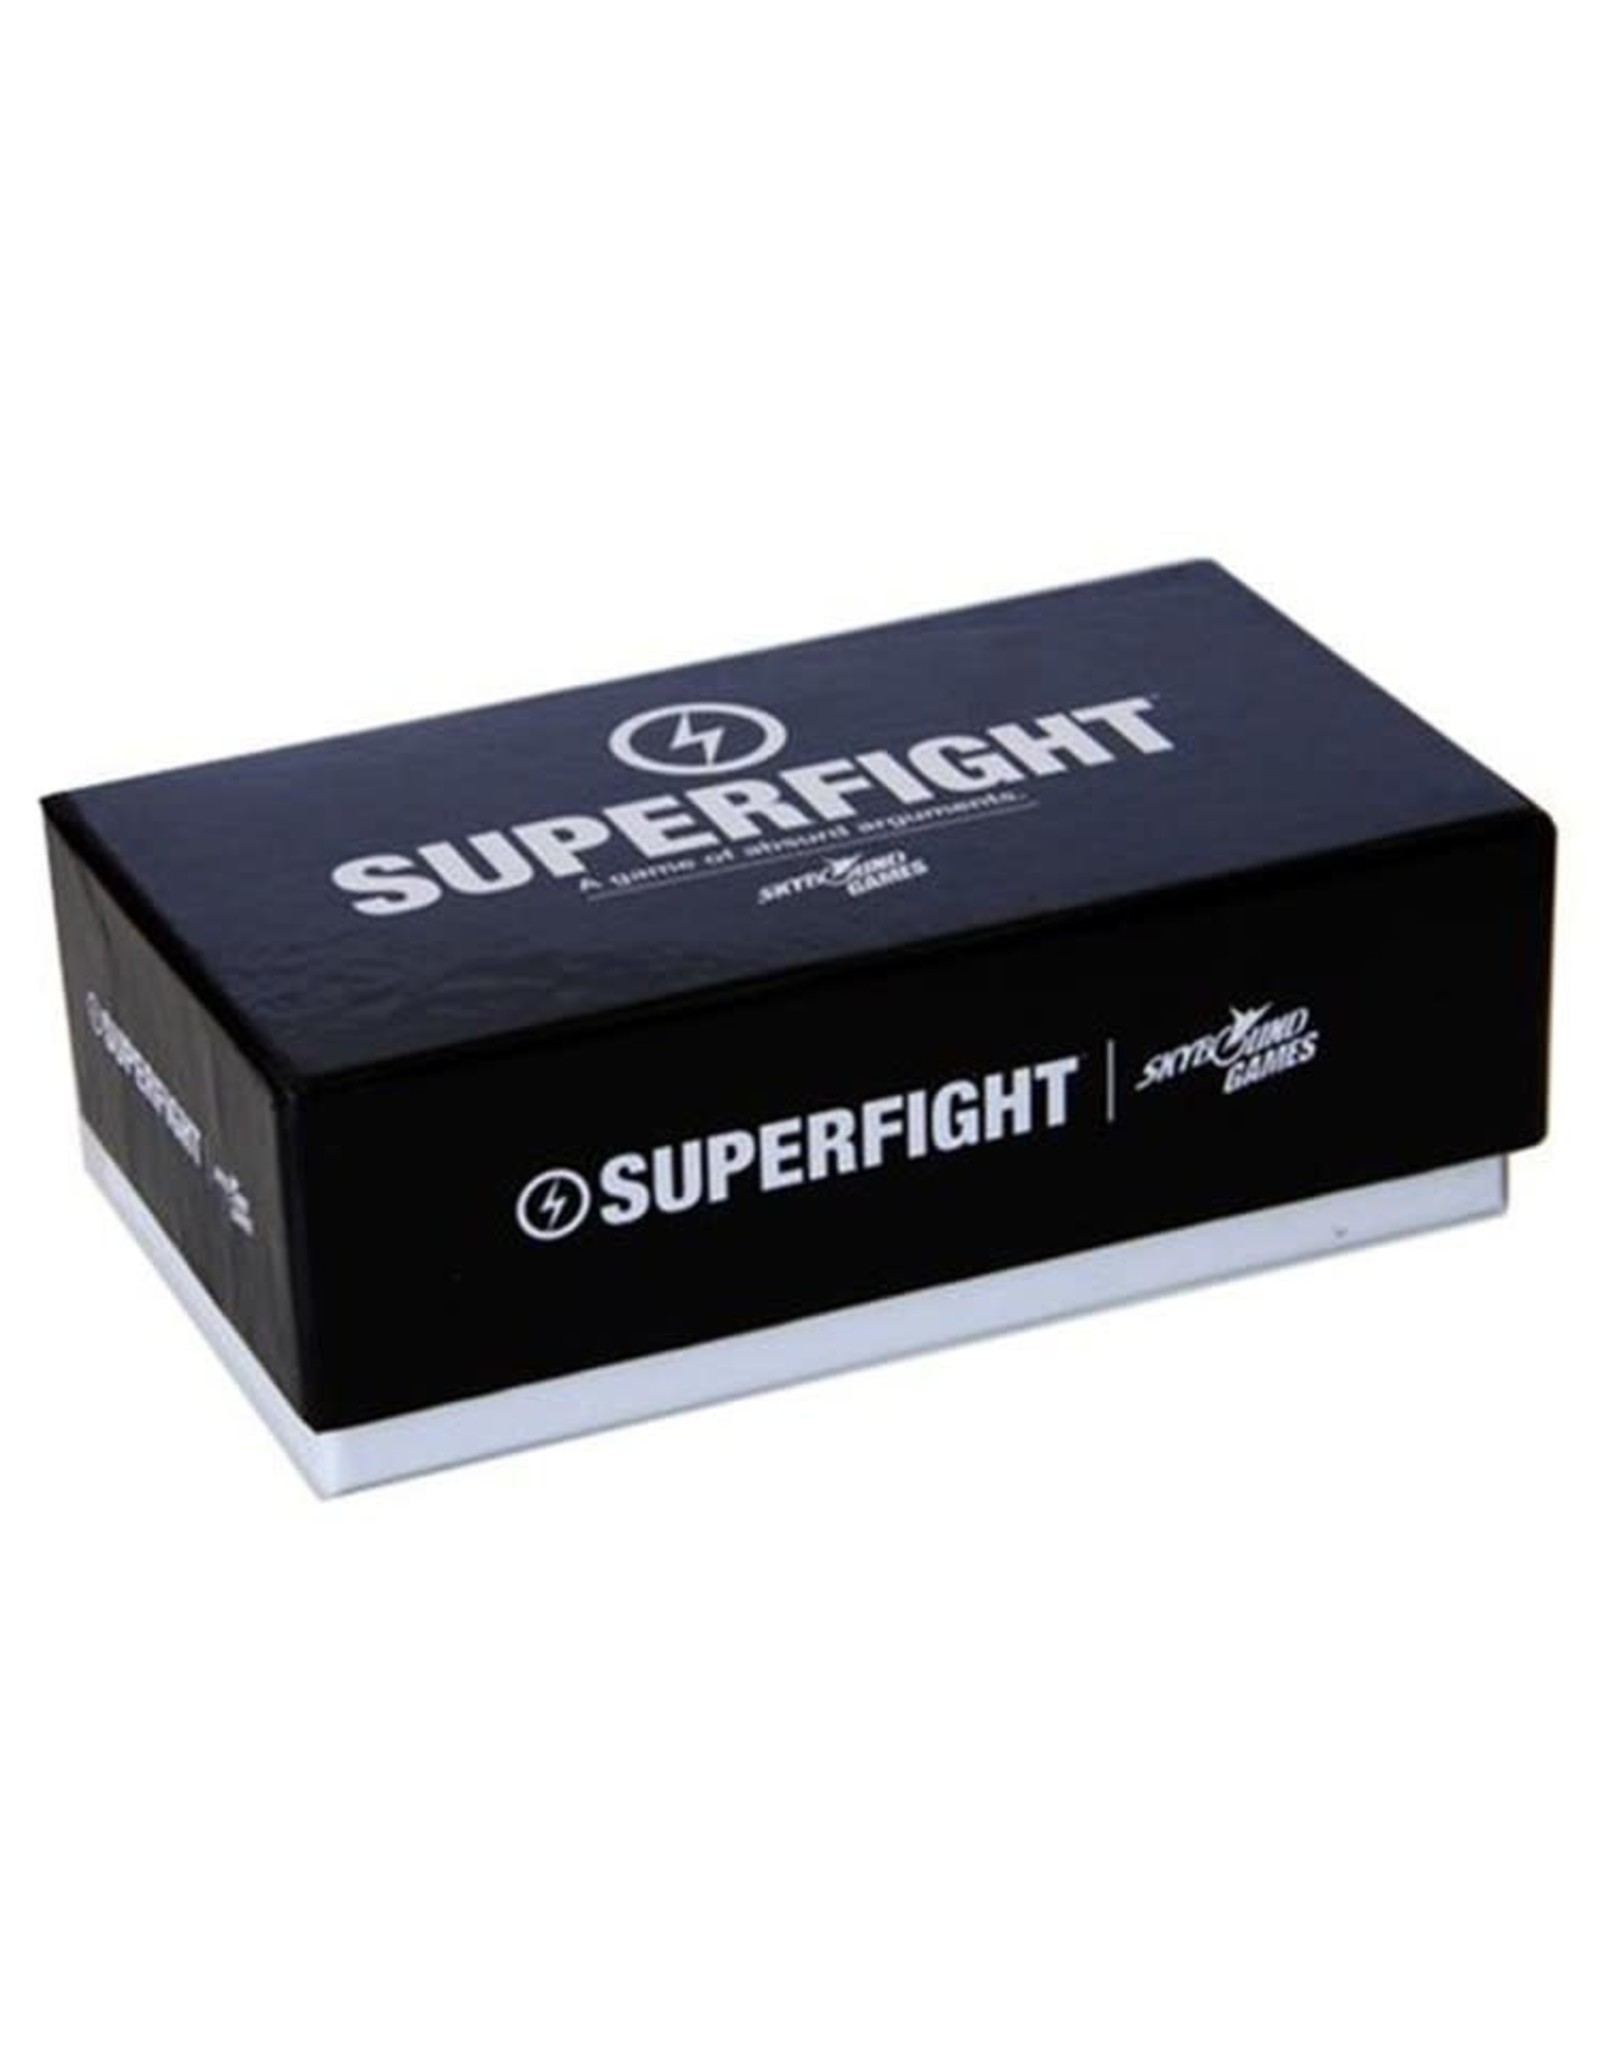 Skybound Superfight